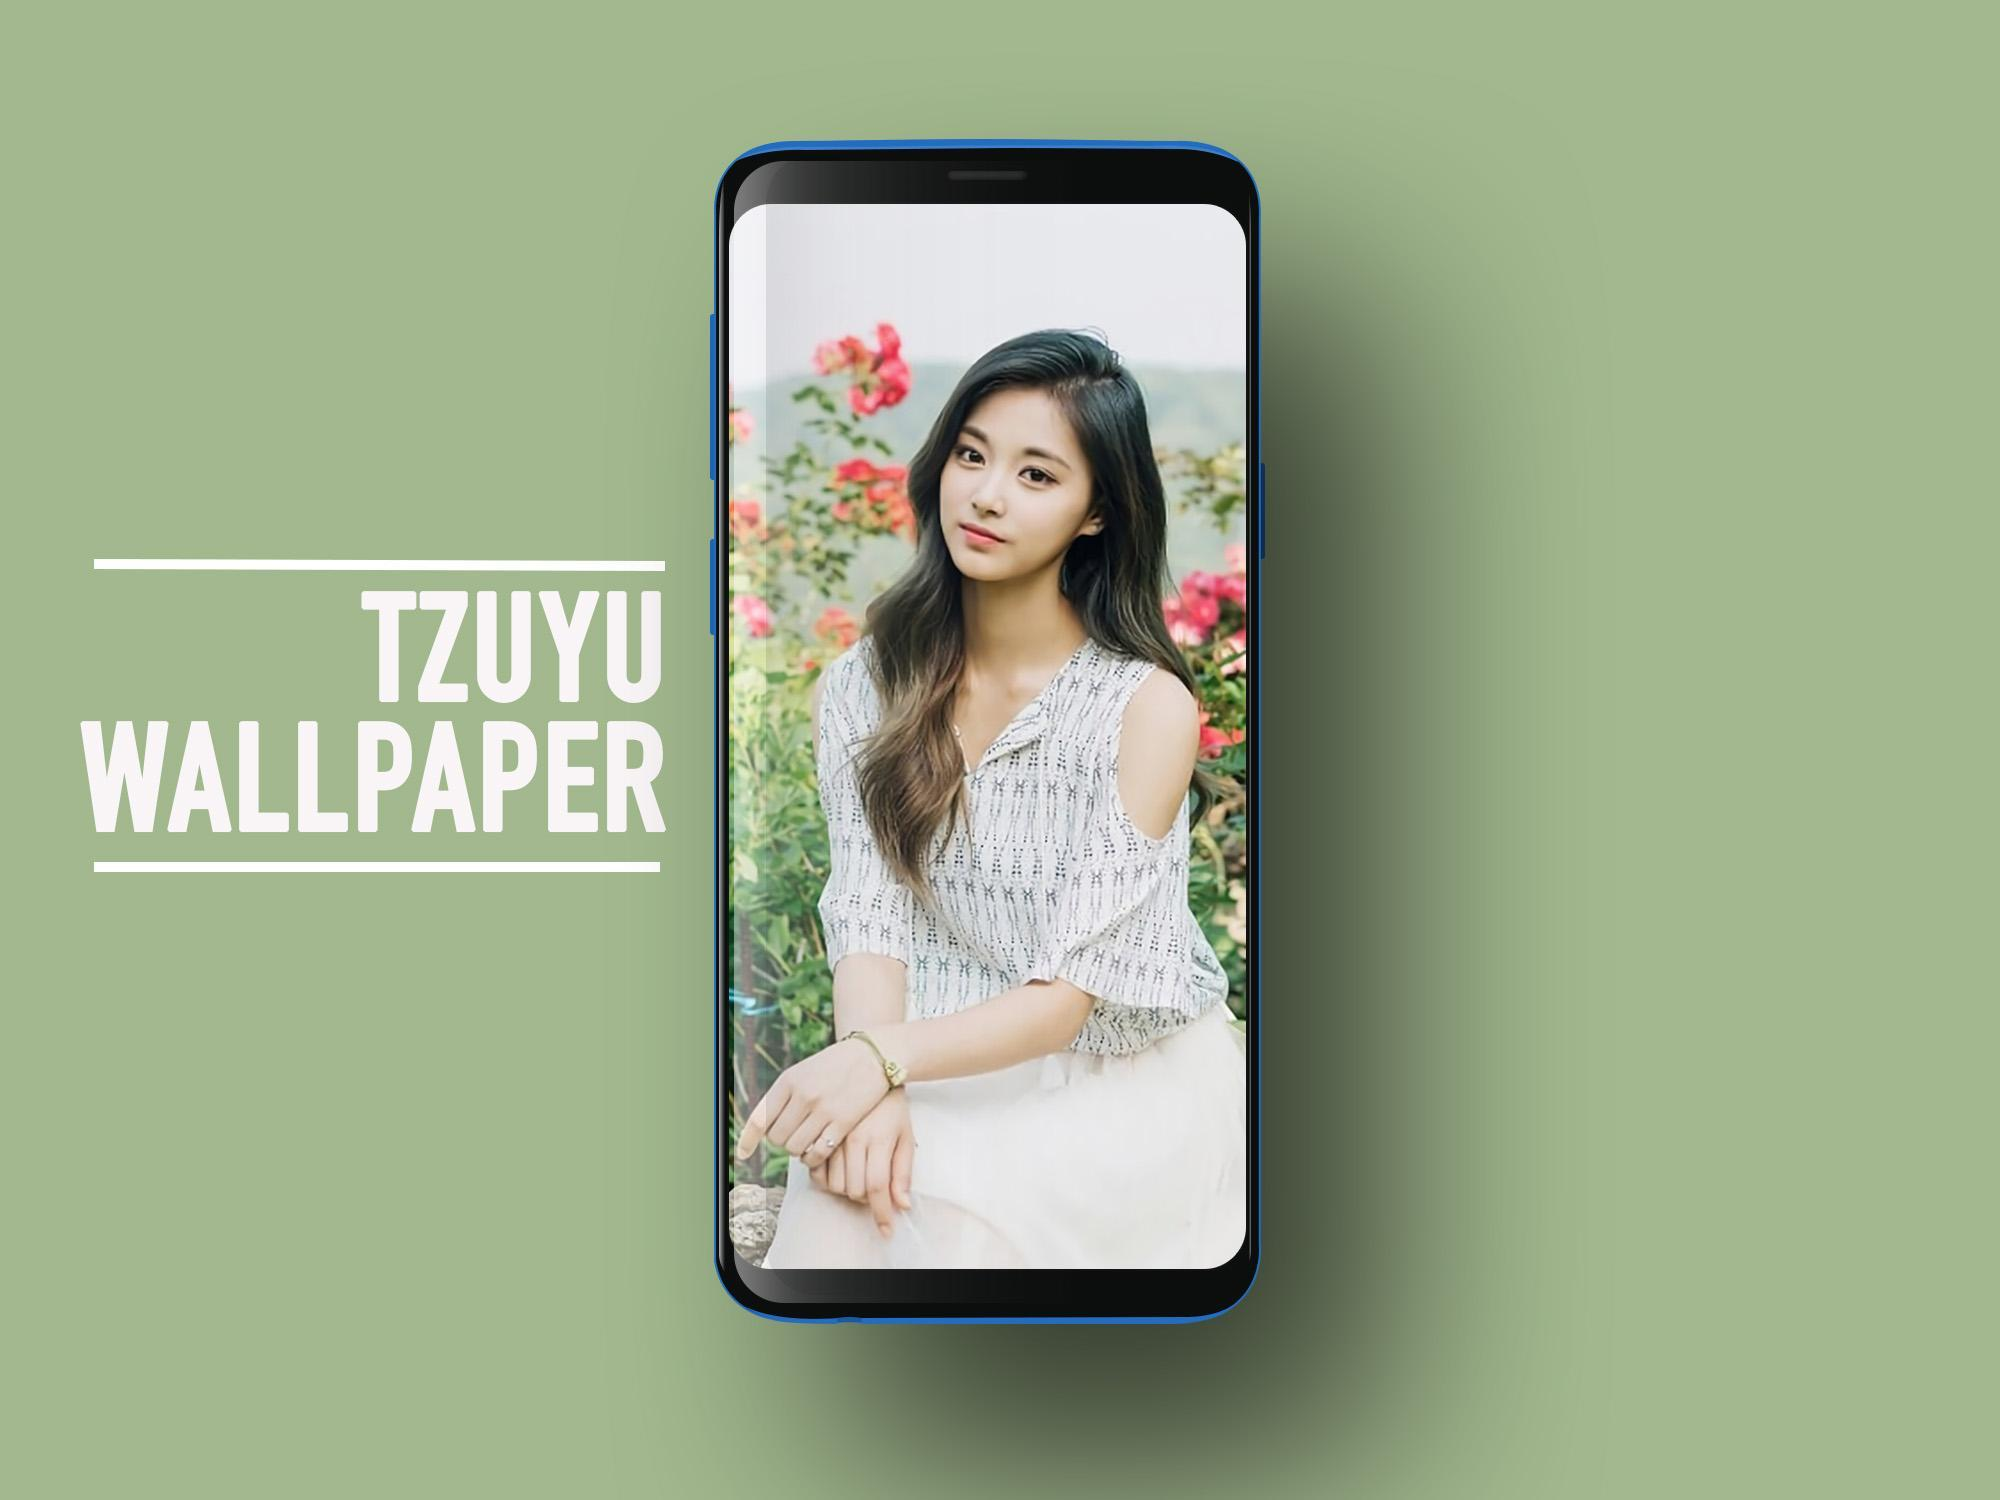 Tzuyu Twice Wallpapers Kpop Hd For Android Apk Download